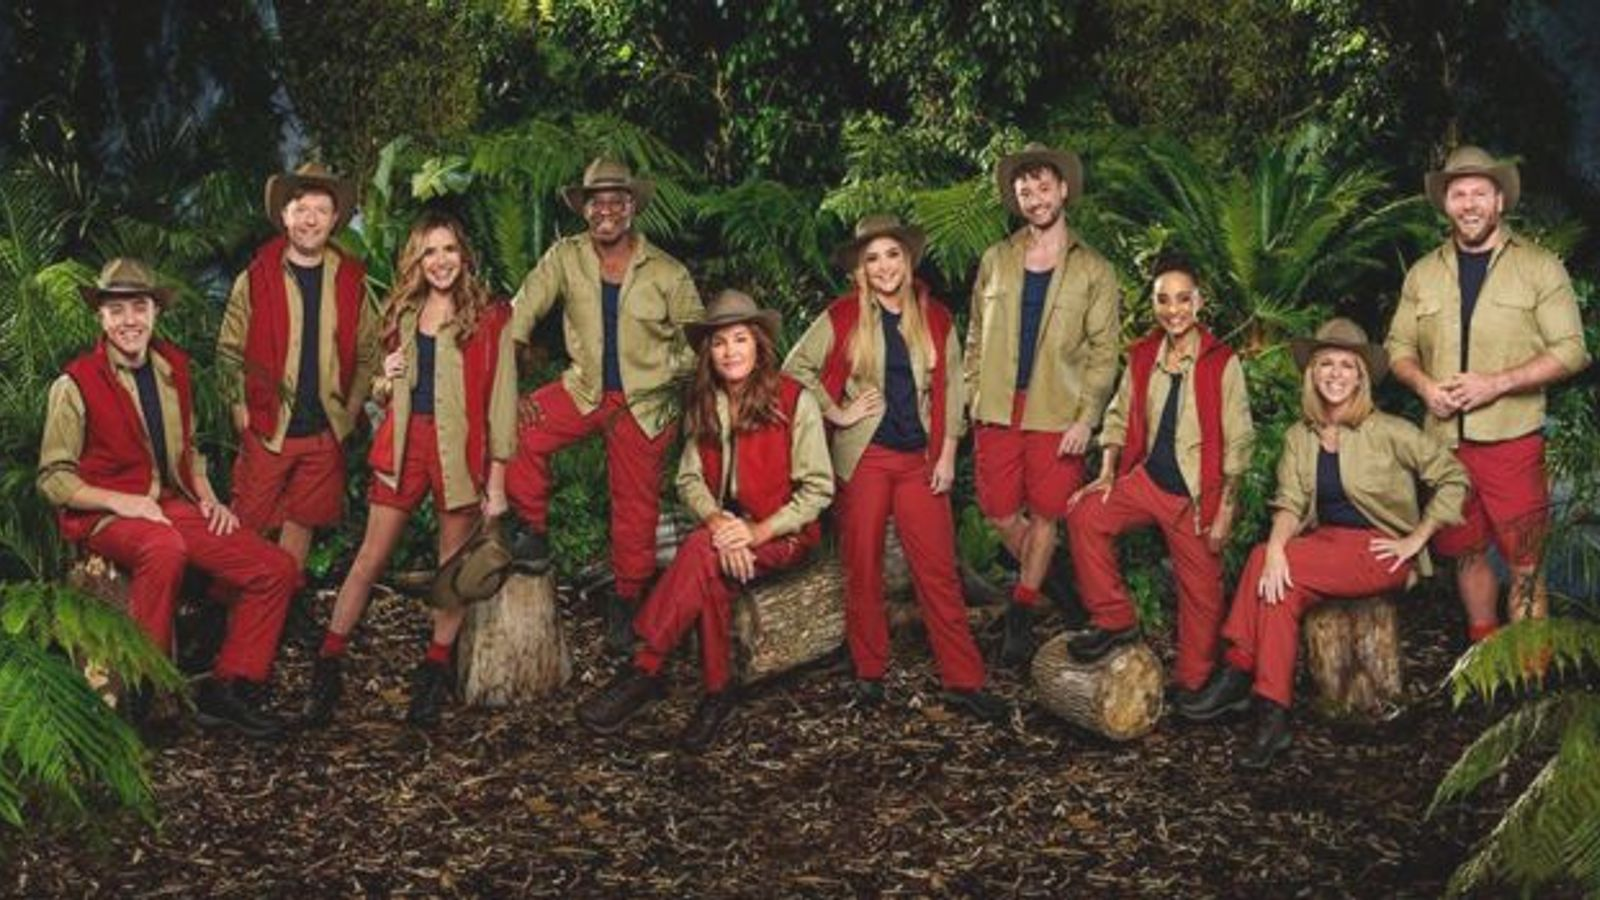 I'm A Celebrity swaps sweltering Australian jungle for cold British castle thumbnail